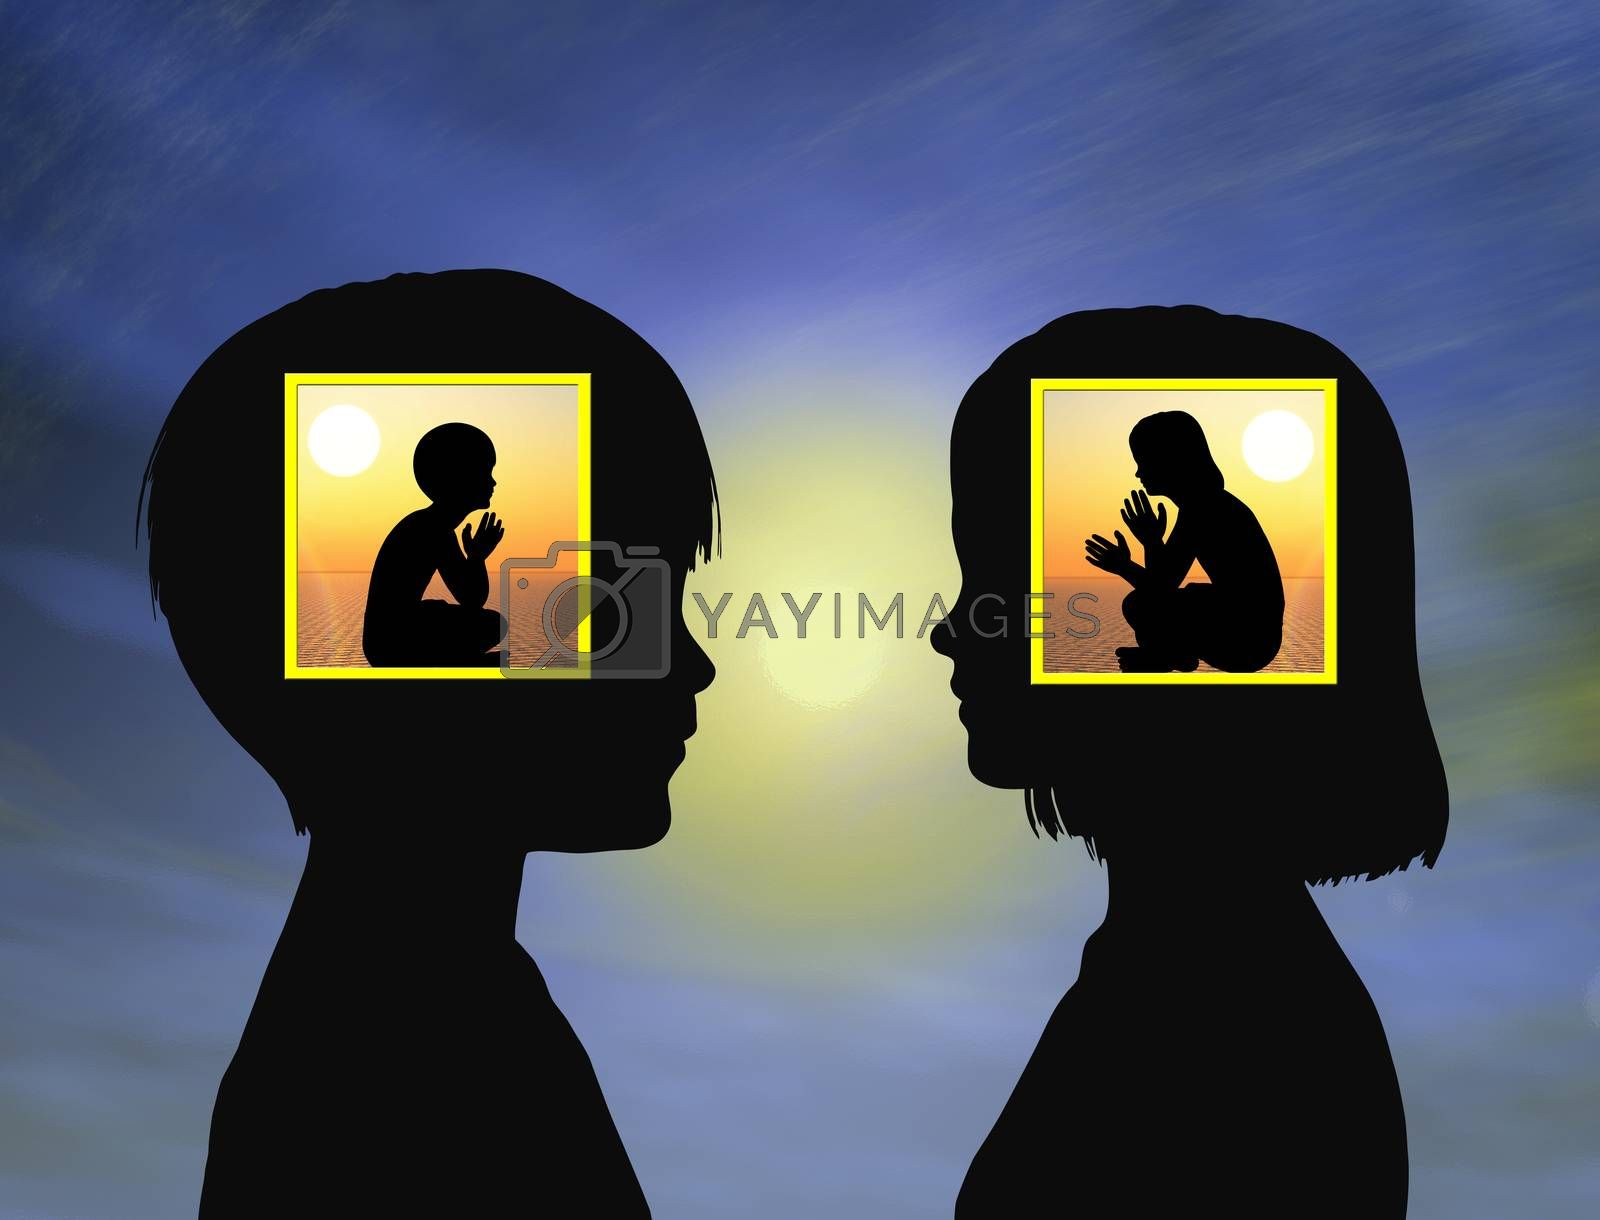 Girl and boy sharing mysteries in early childhood developing fantasy, social skills and imagination